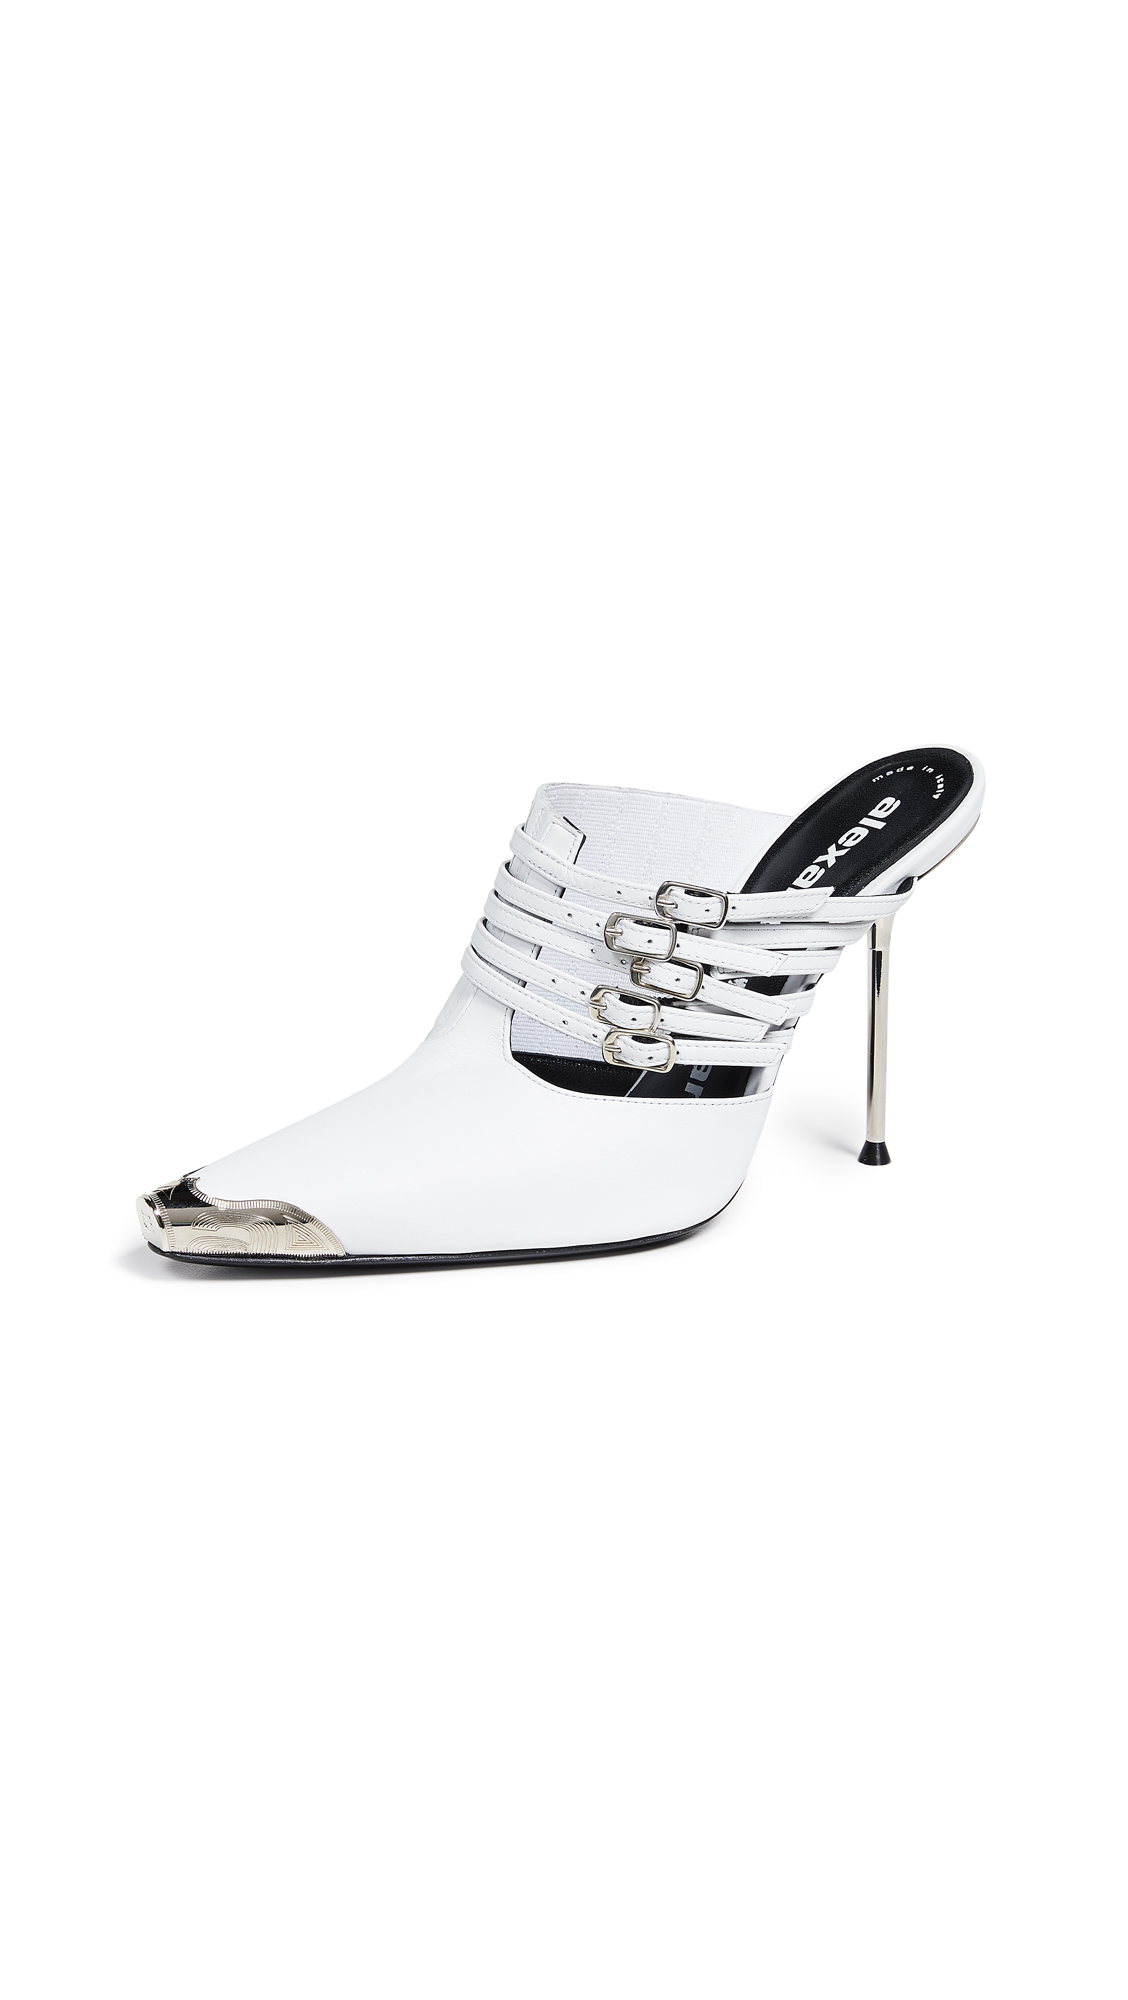 Alexander Wang Minna High Heel Mules - White